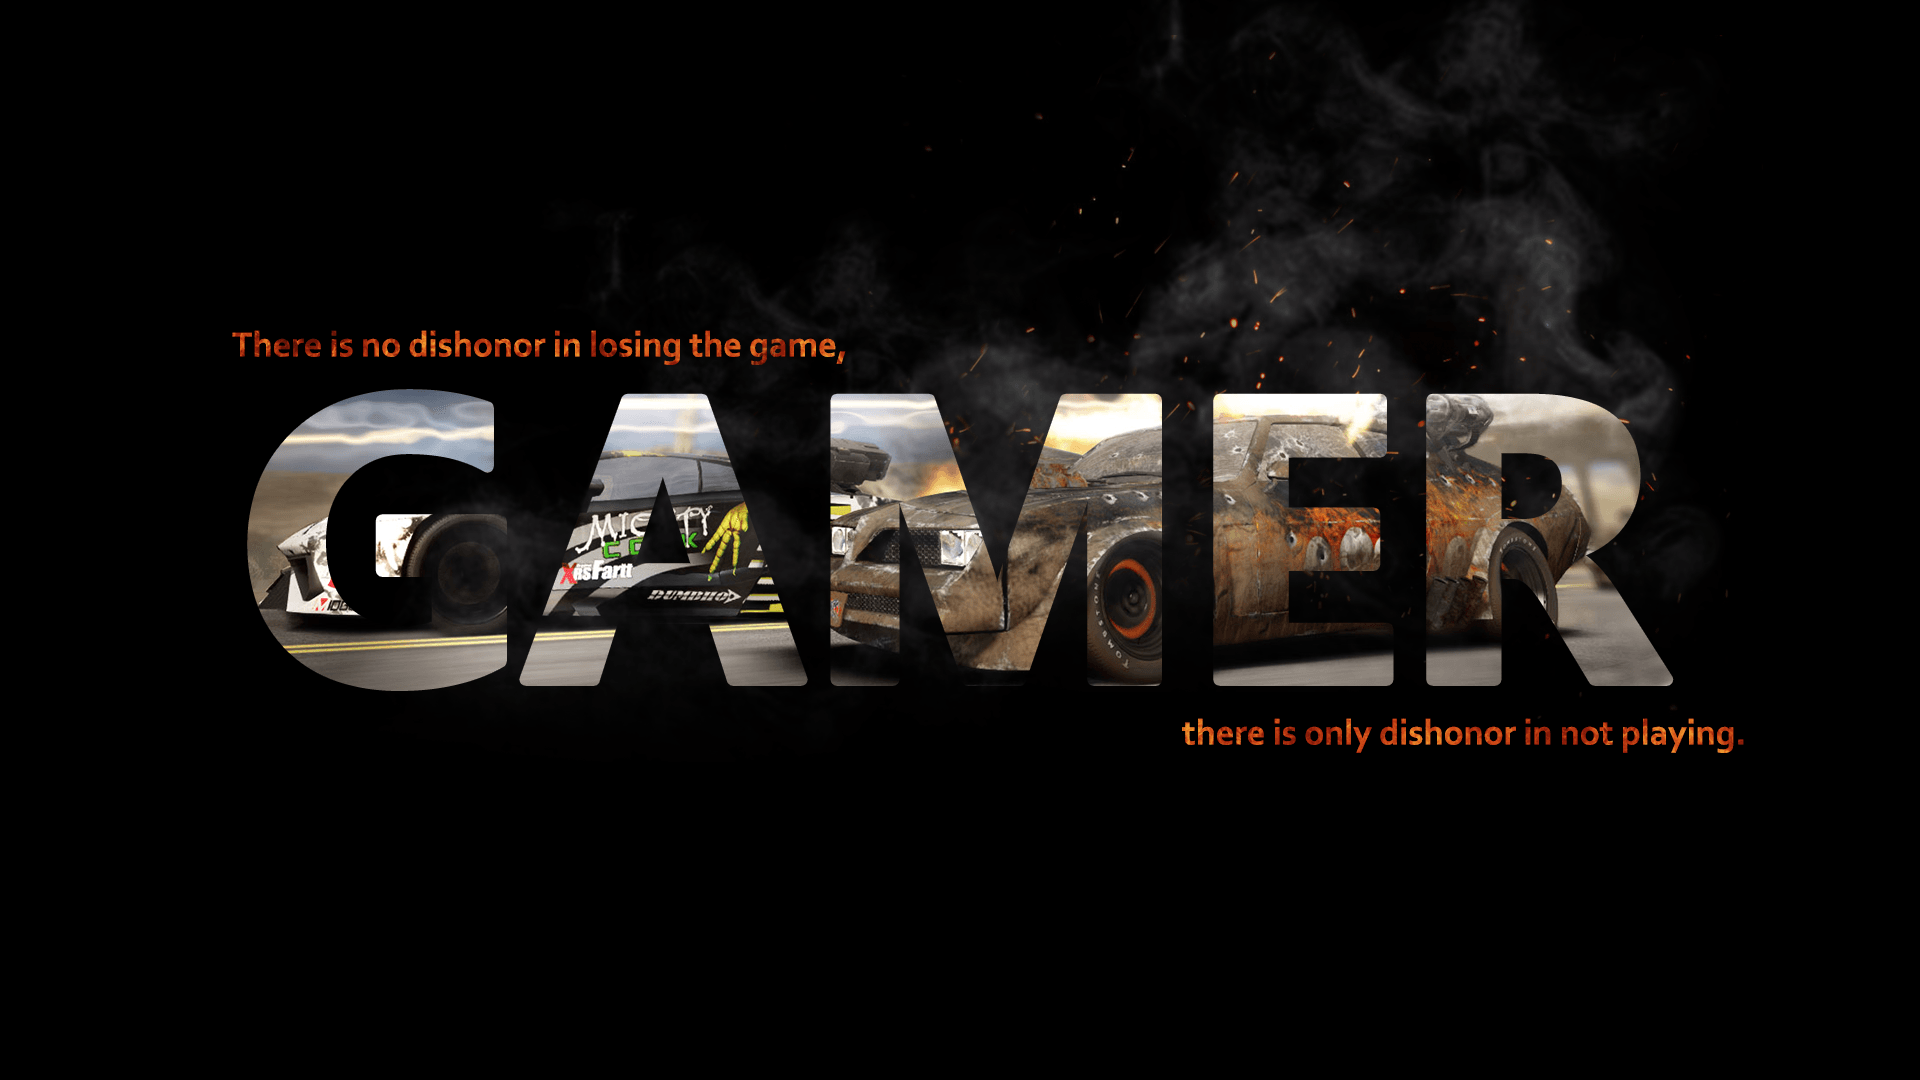 Superb Wallpapers With Quotes For Facebook Pro Gamer Wallpapers Wallpaper Cave